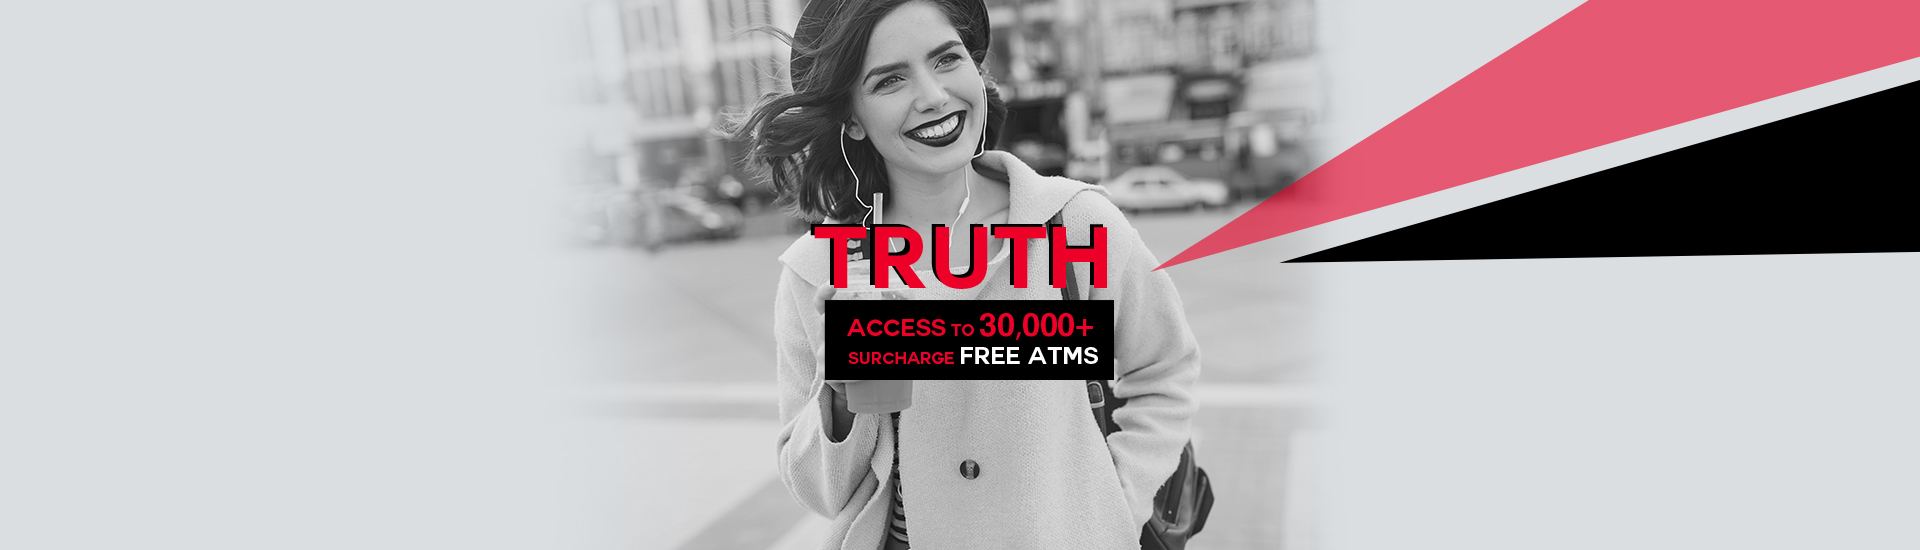 Truth-access-30000-atmsv4